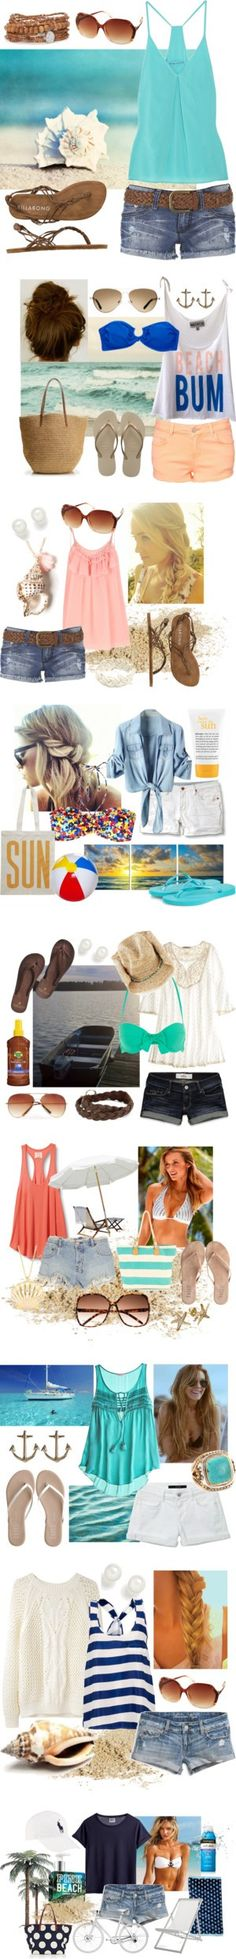 Can't wait for summer!!!!! I want all of these!  Follow me to see more great clothes and pins!!!:)